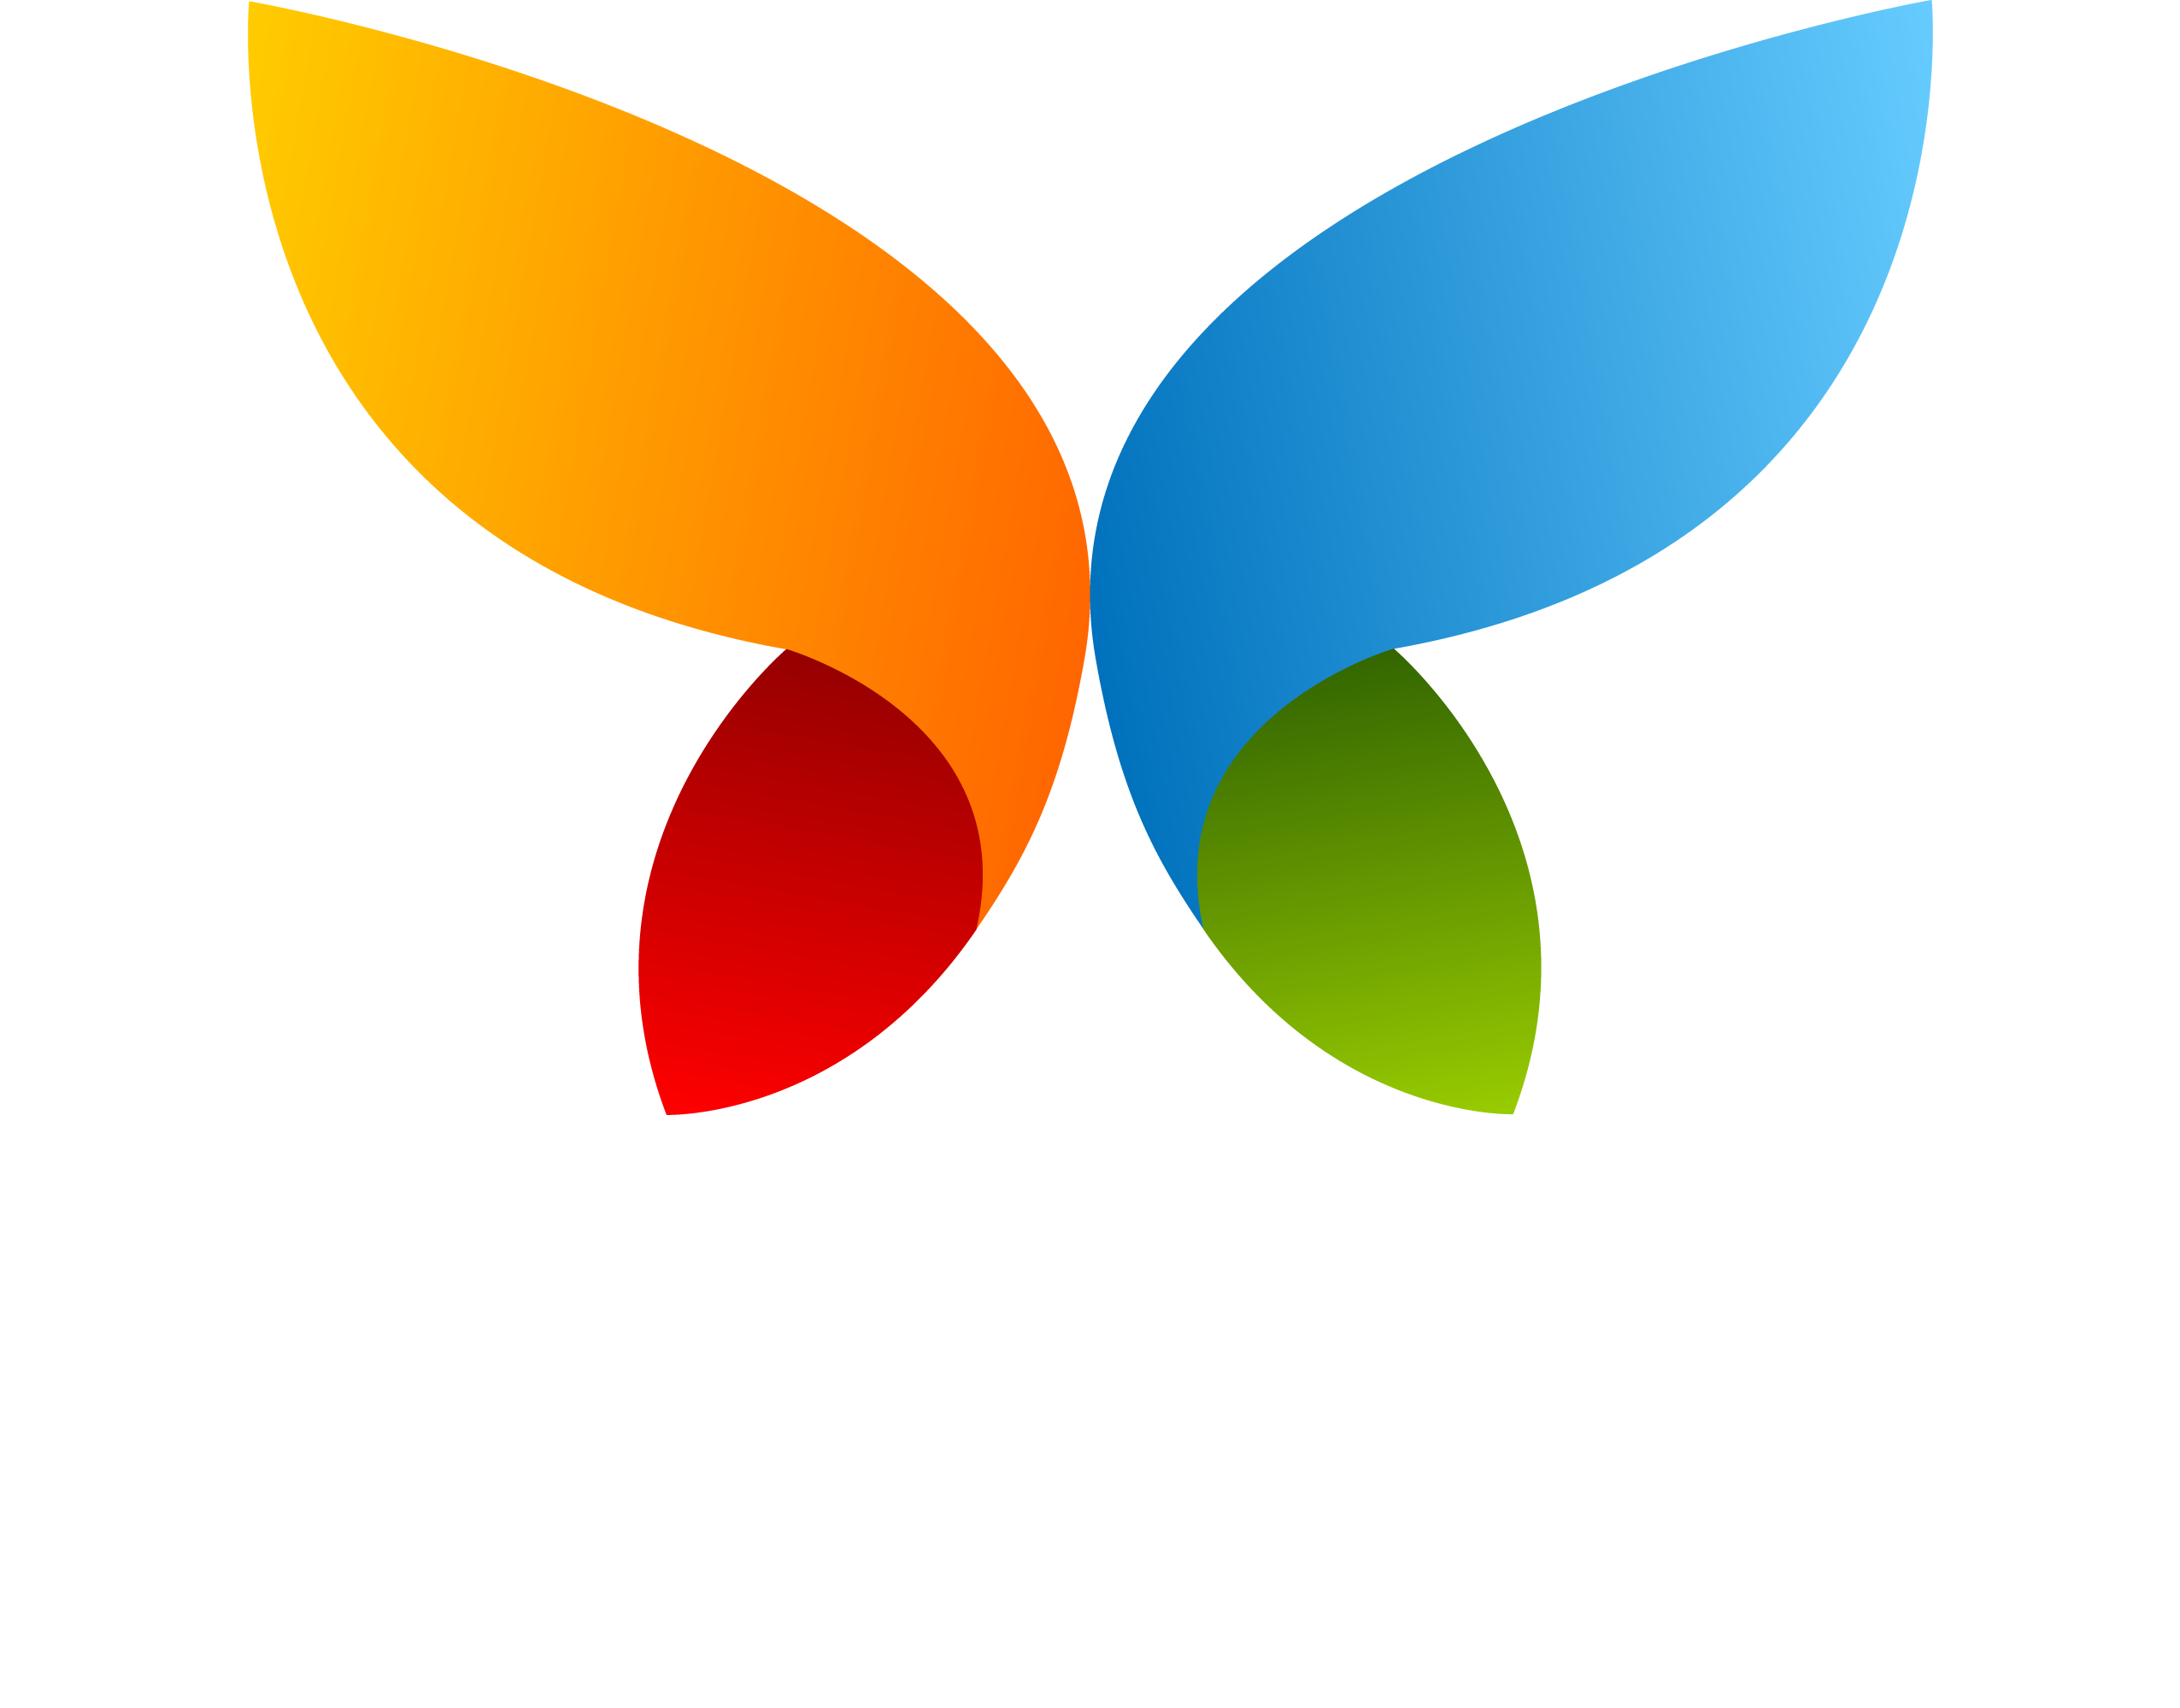 ubiquitome-white-letters.png